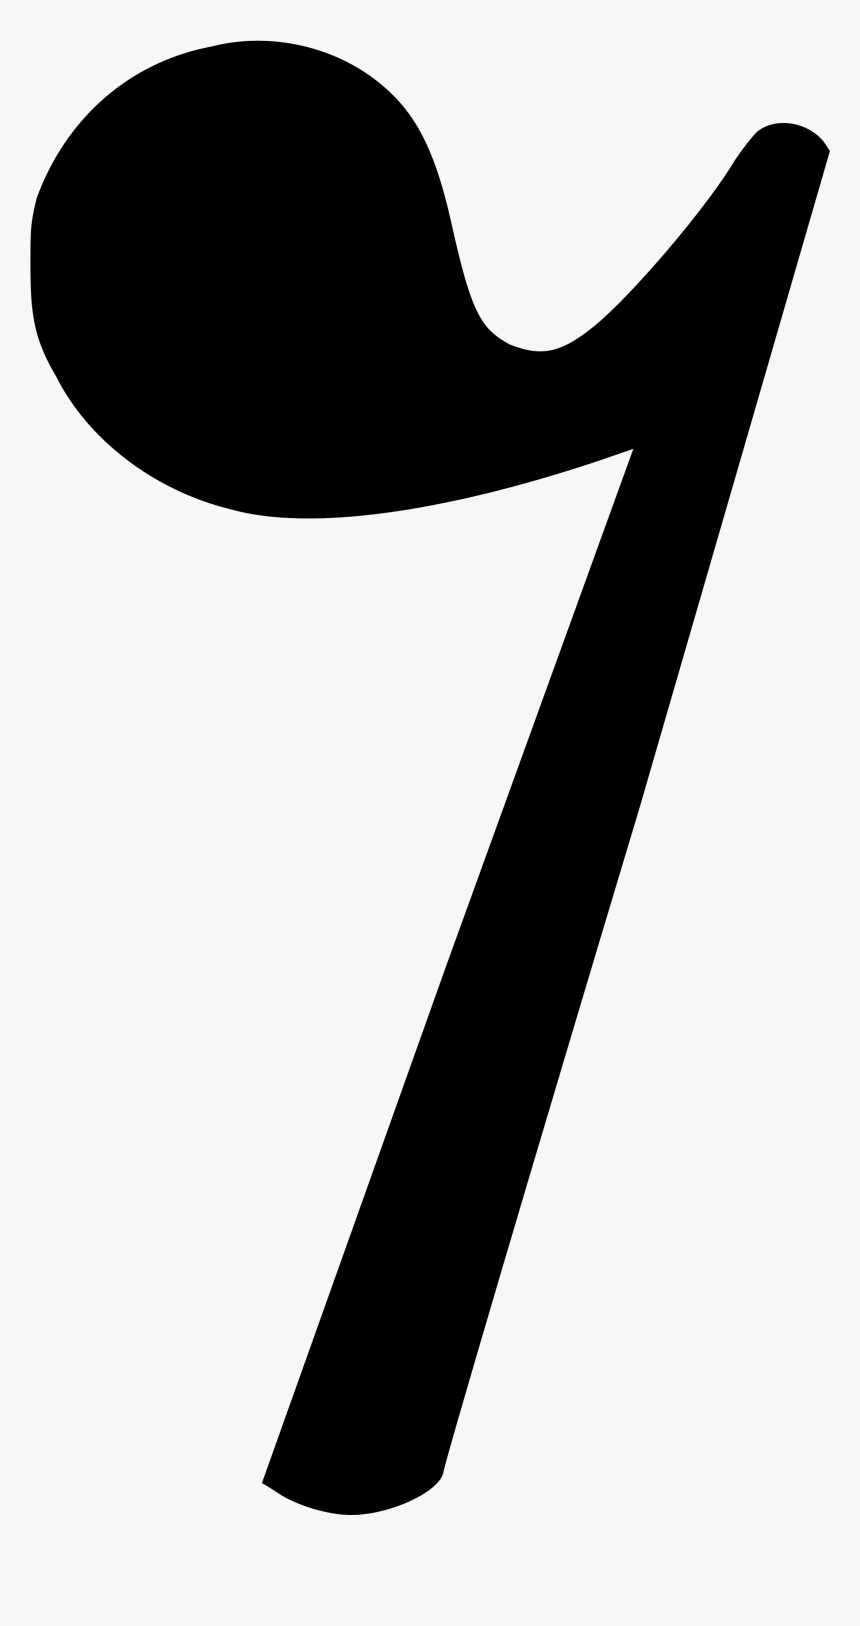 Eighth Rest Music Symbol - Eighth Rest Symbol In Music, HD Png Download, Free Download